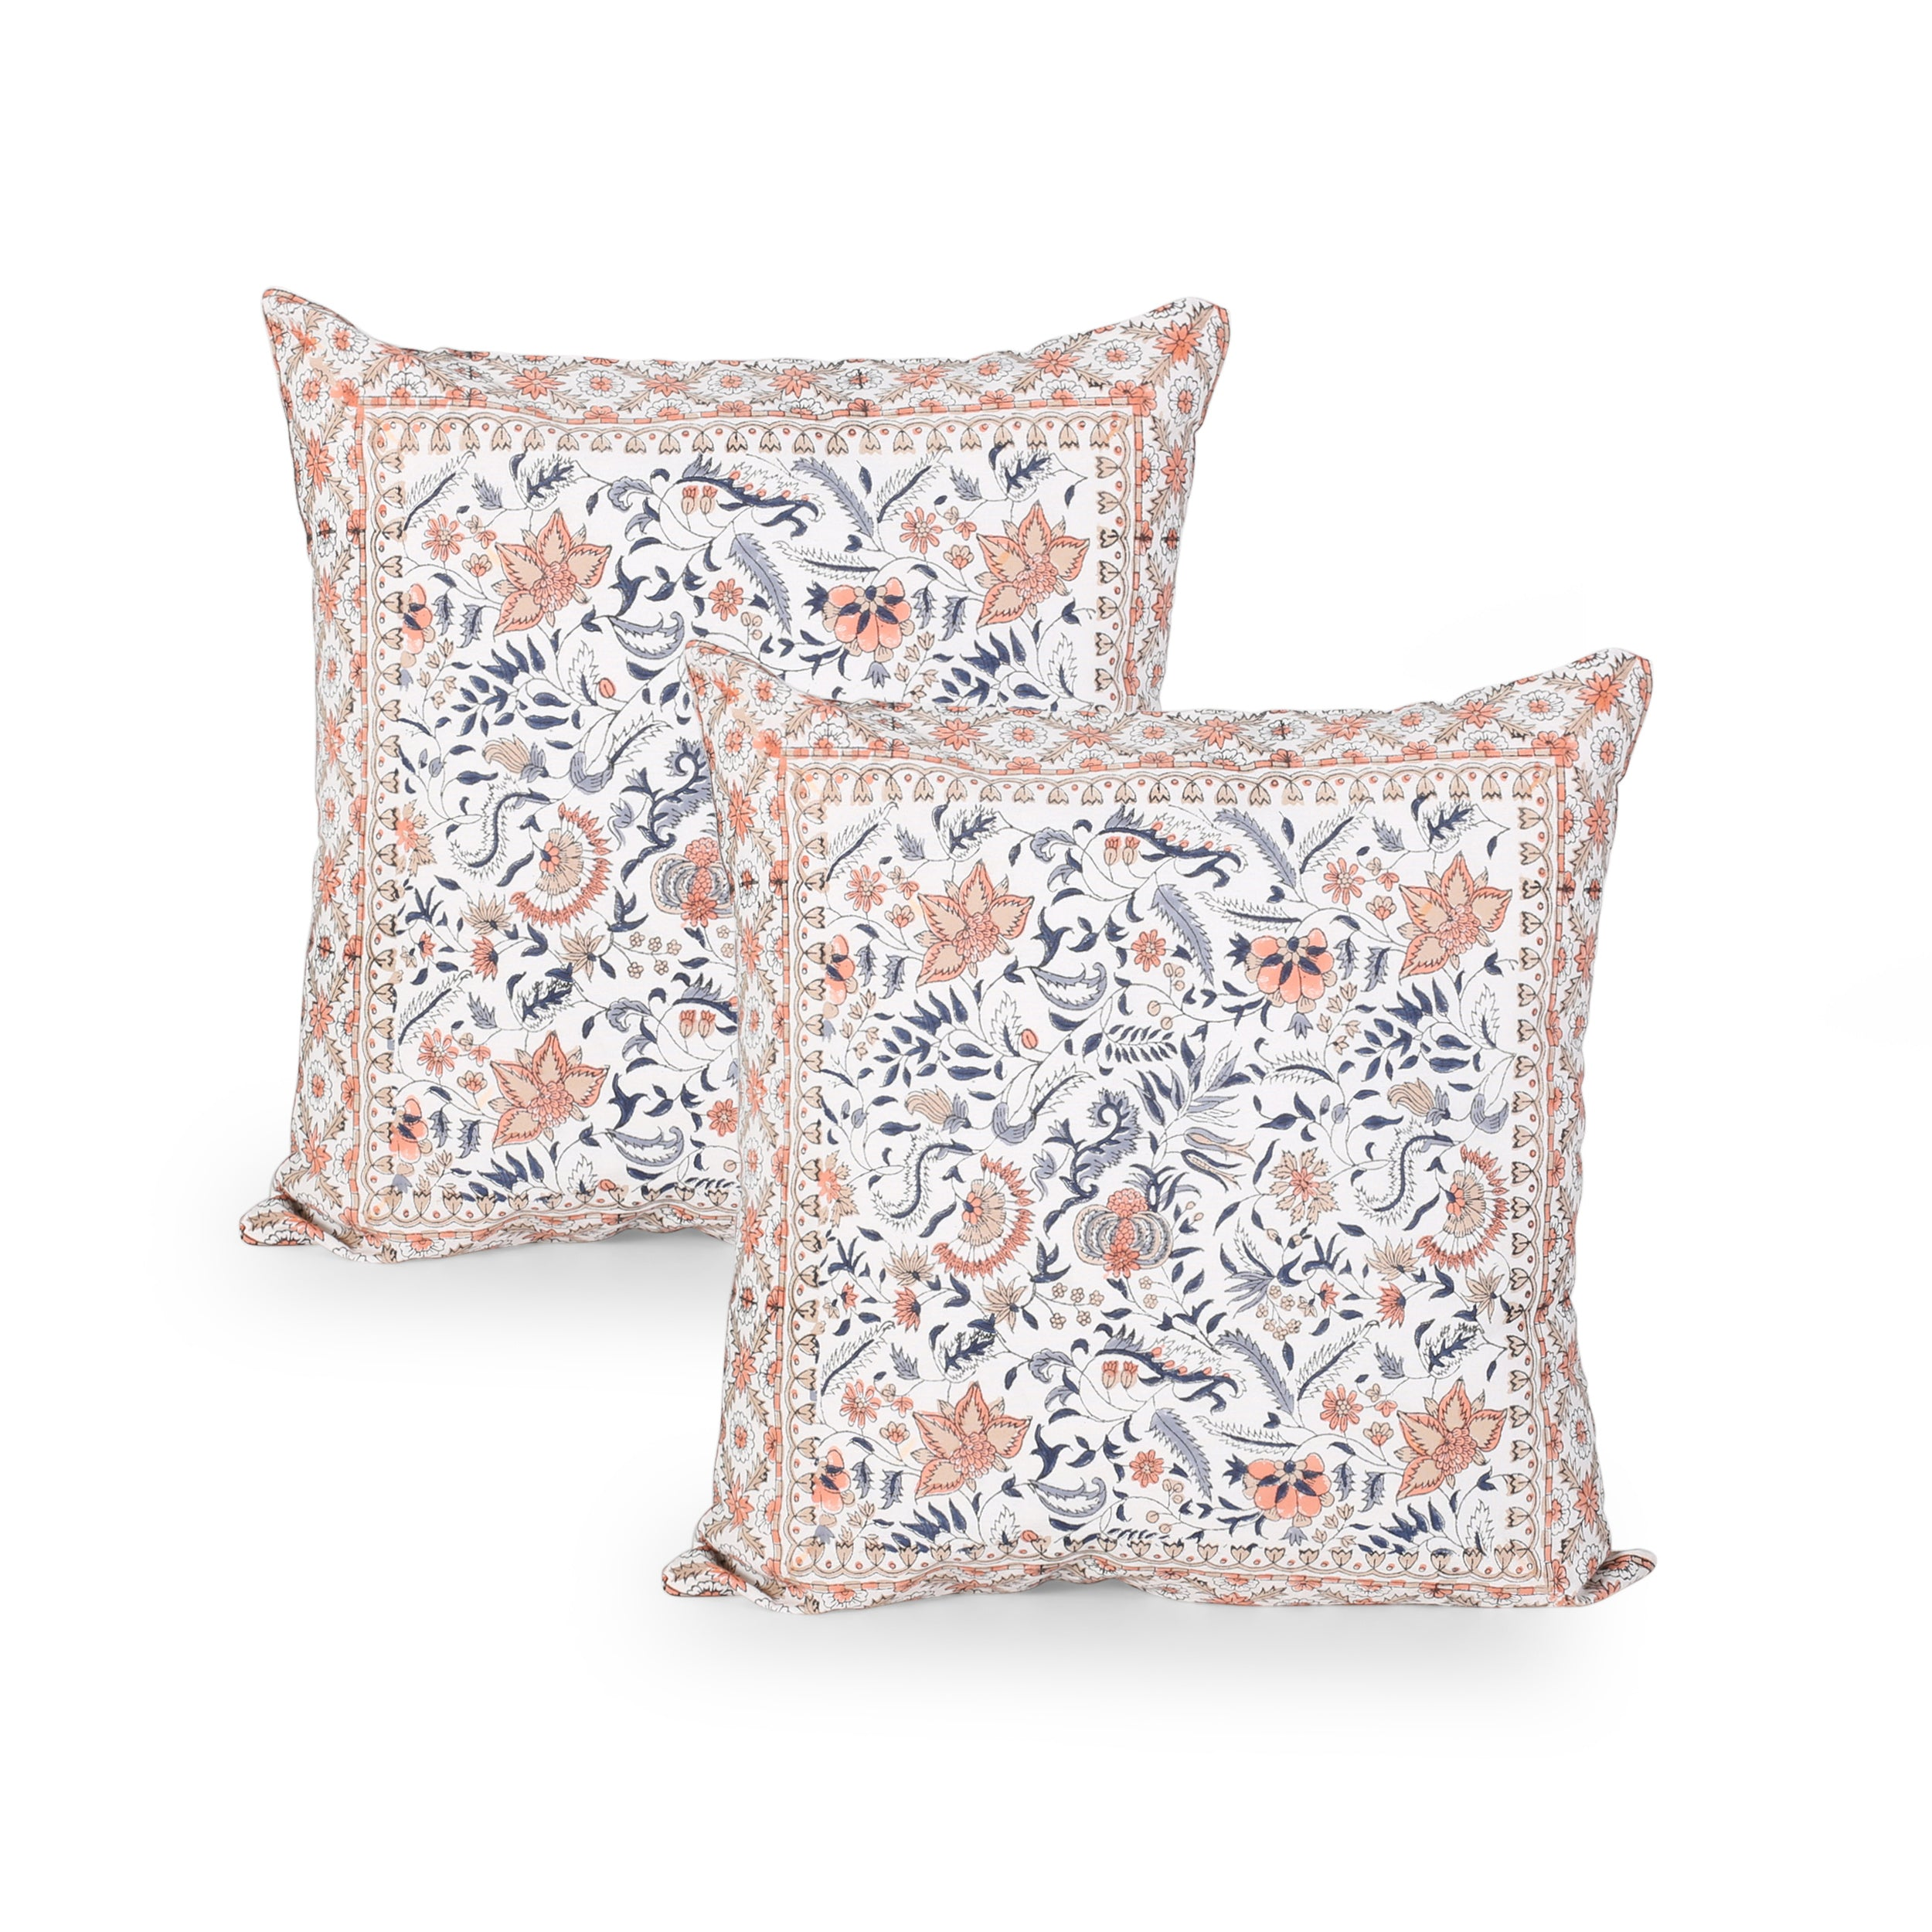 Aalasia Modern Fabric Throw Pillow Cover Set of 2